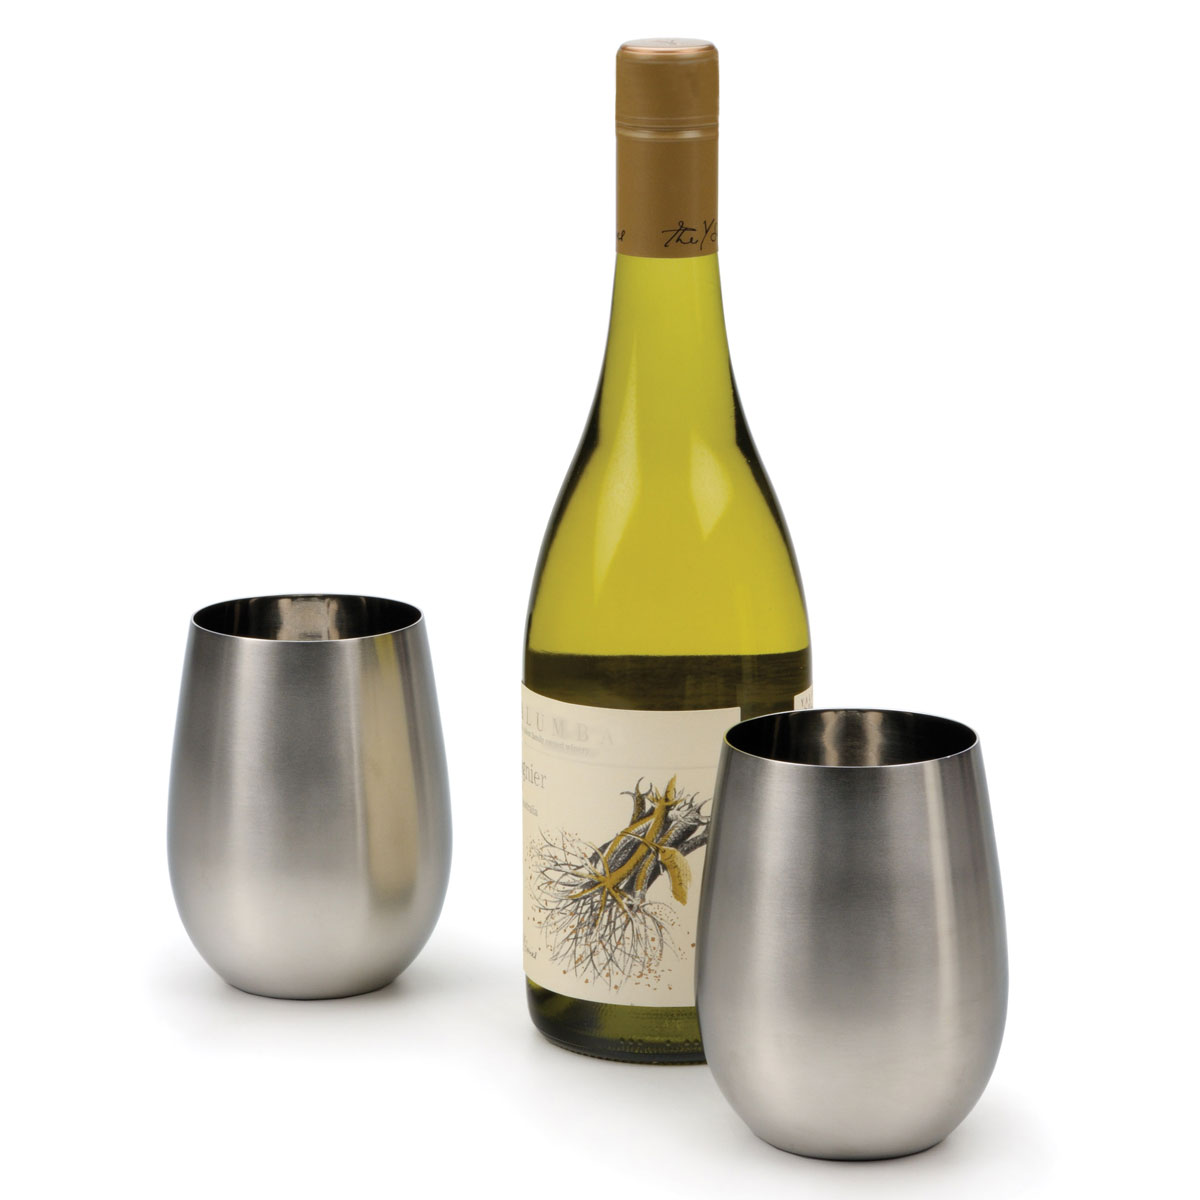 Stemless stainless steel wine glasses the green head - Stemless wine goblets ...